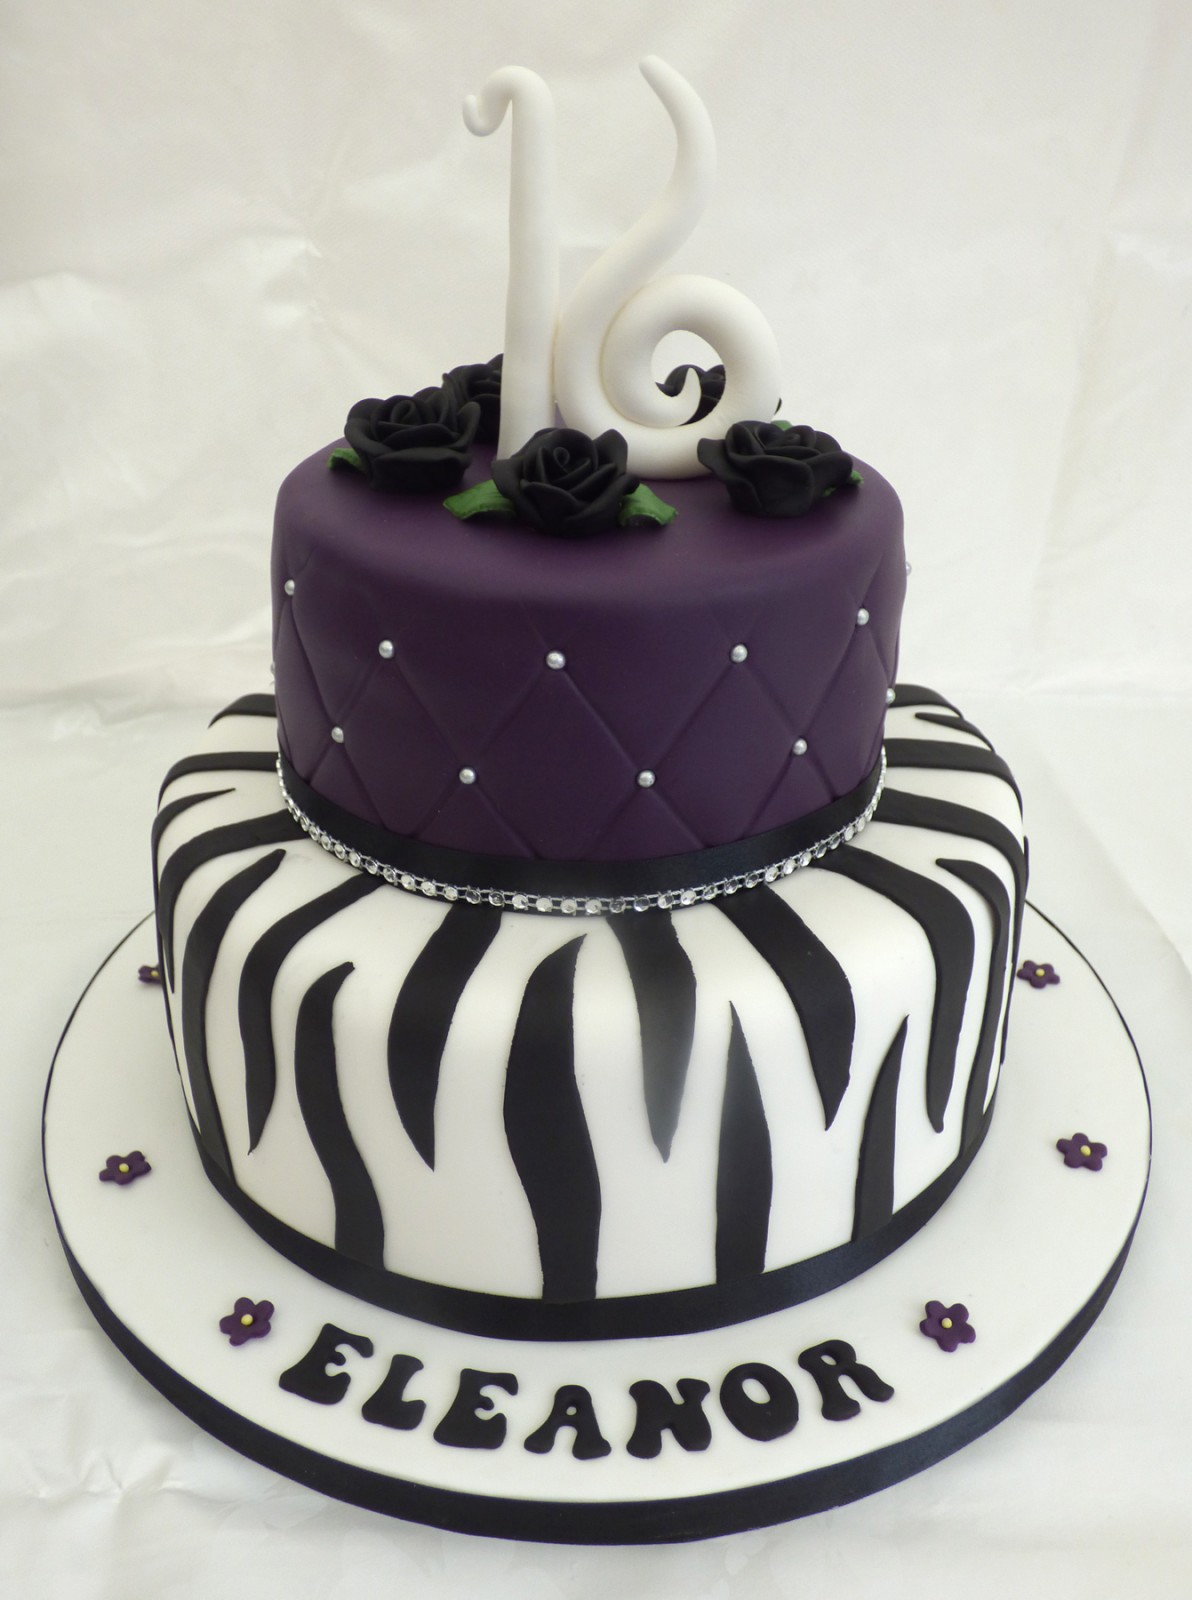 Elegant Cake Designs Birthday Cakes : Elegant 16th Birthday Cake With Zebra Stripes   Susie s Cakes